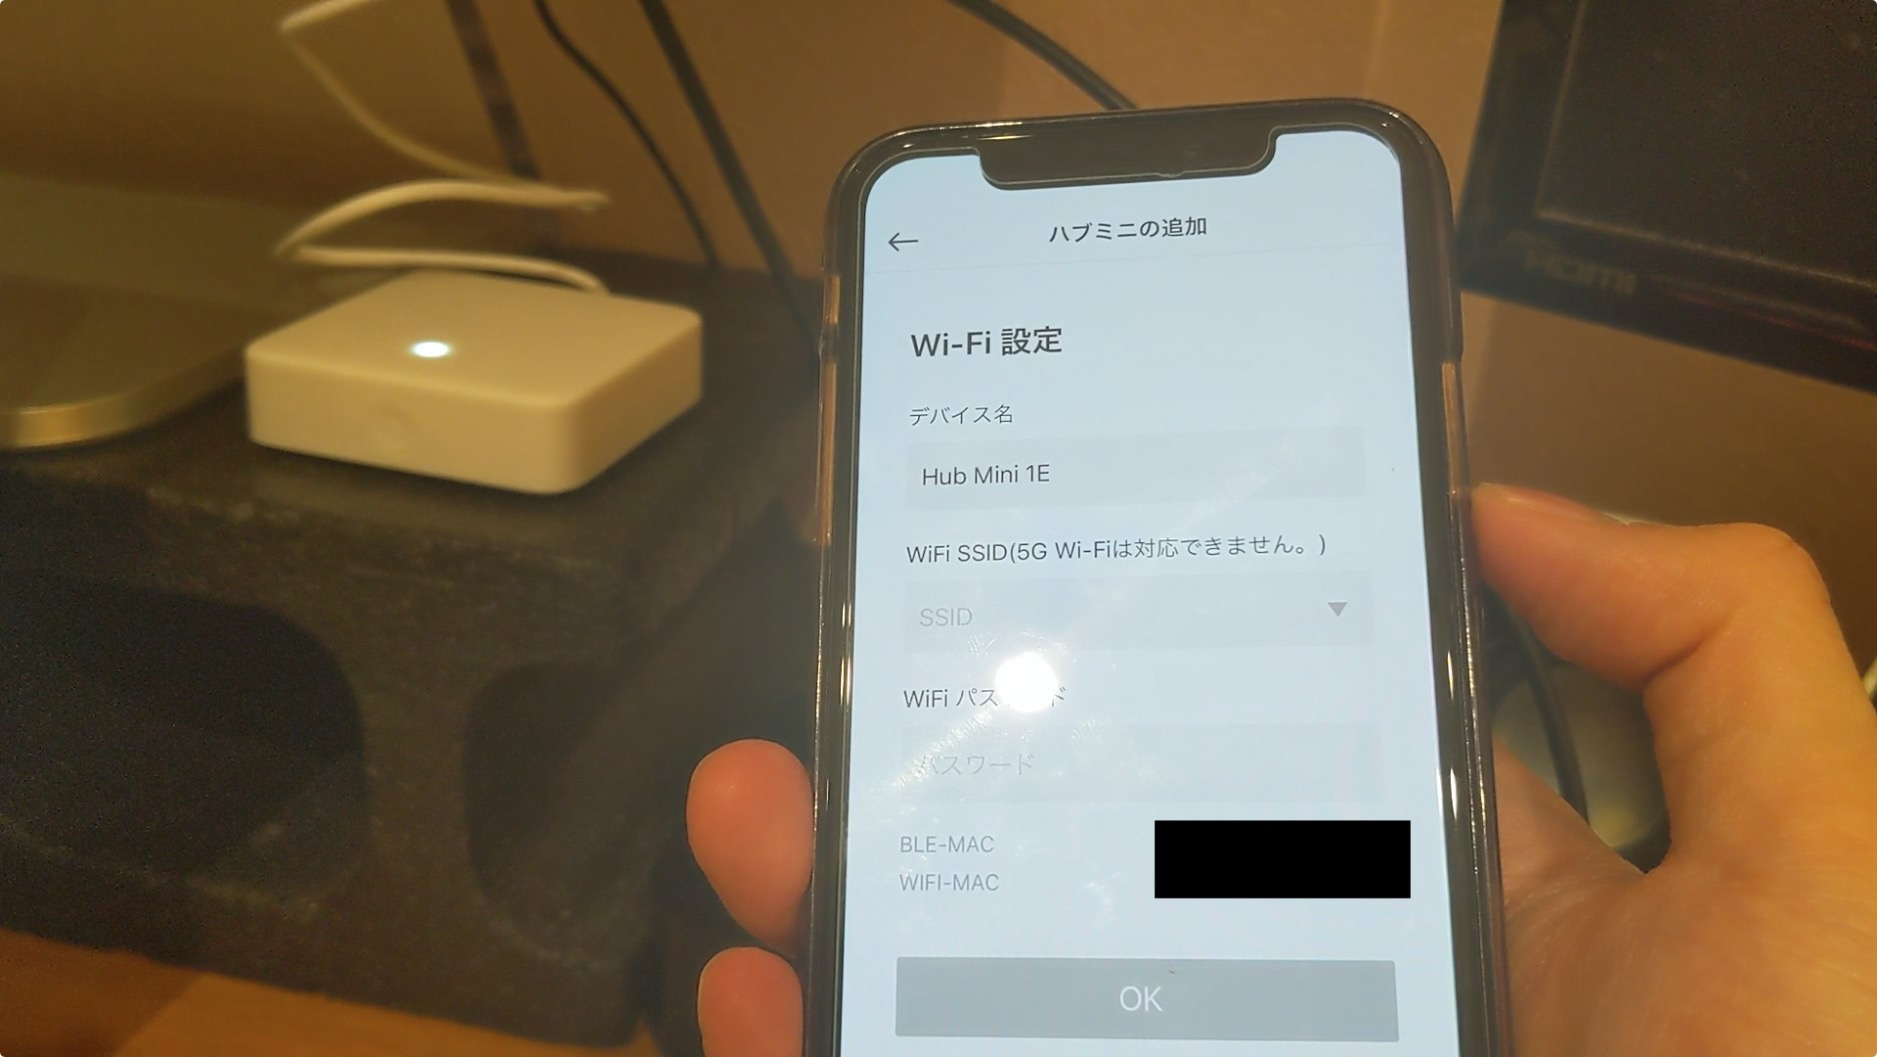 SwitchBot Hub Mini Wifi設定